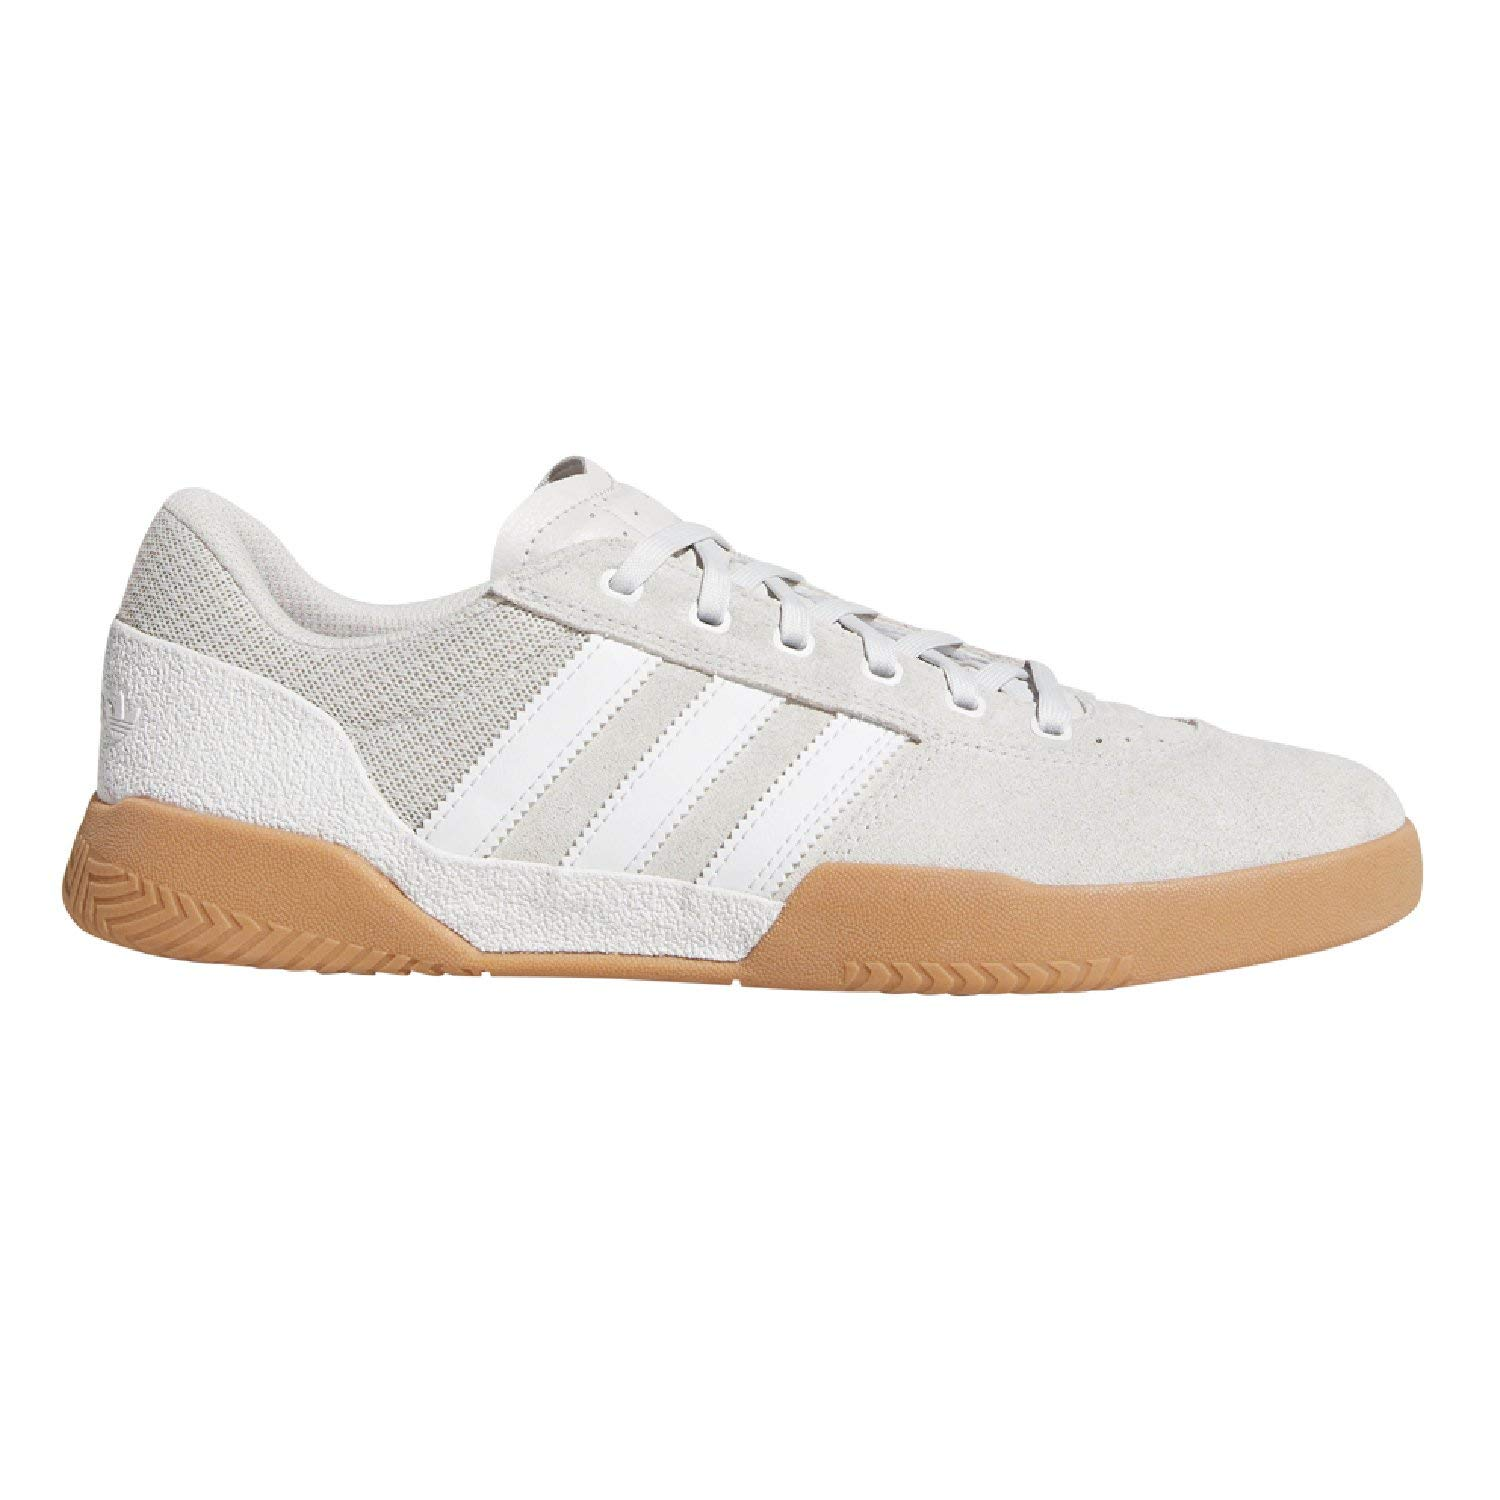 adidas city cup shoes crystal white